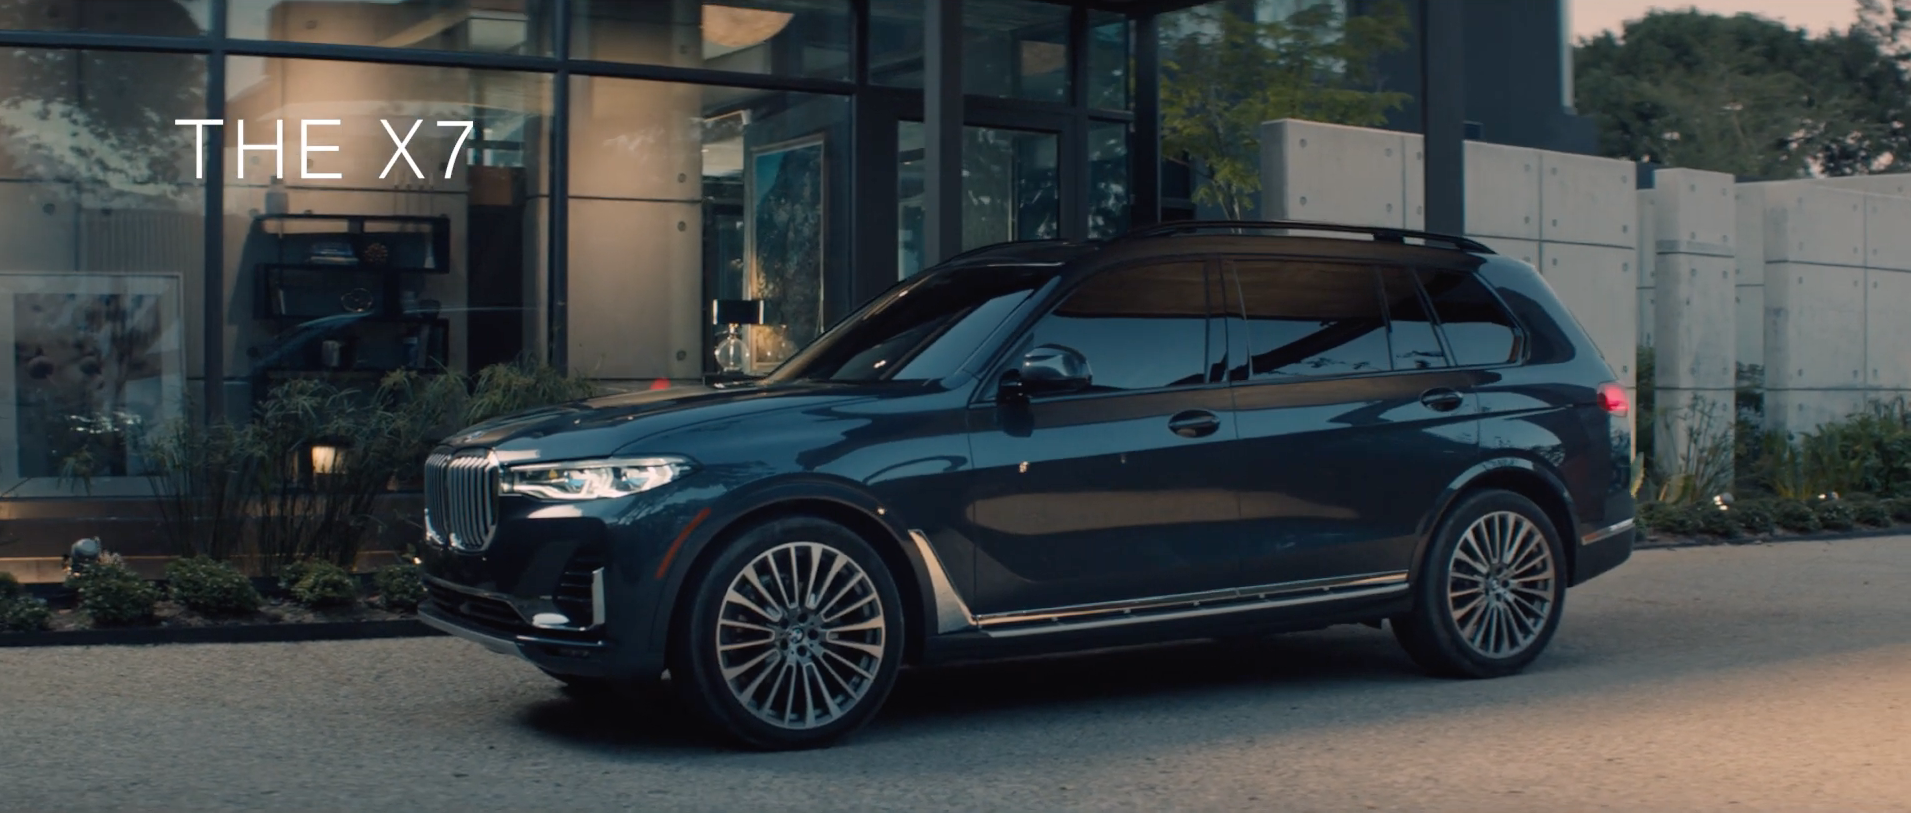 BMW introduce the X7 with this cinematic advert